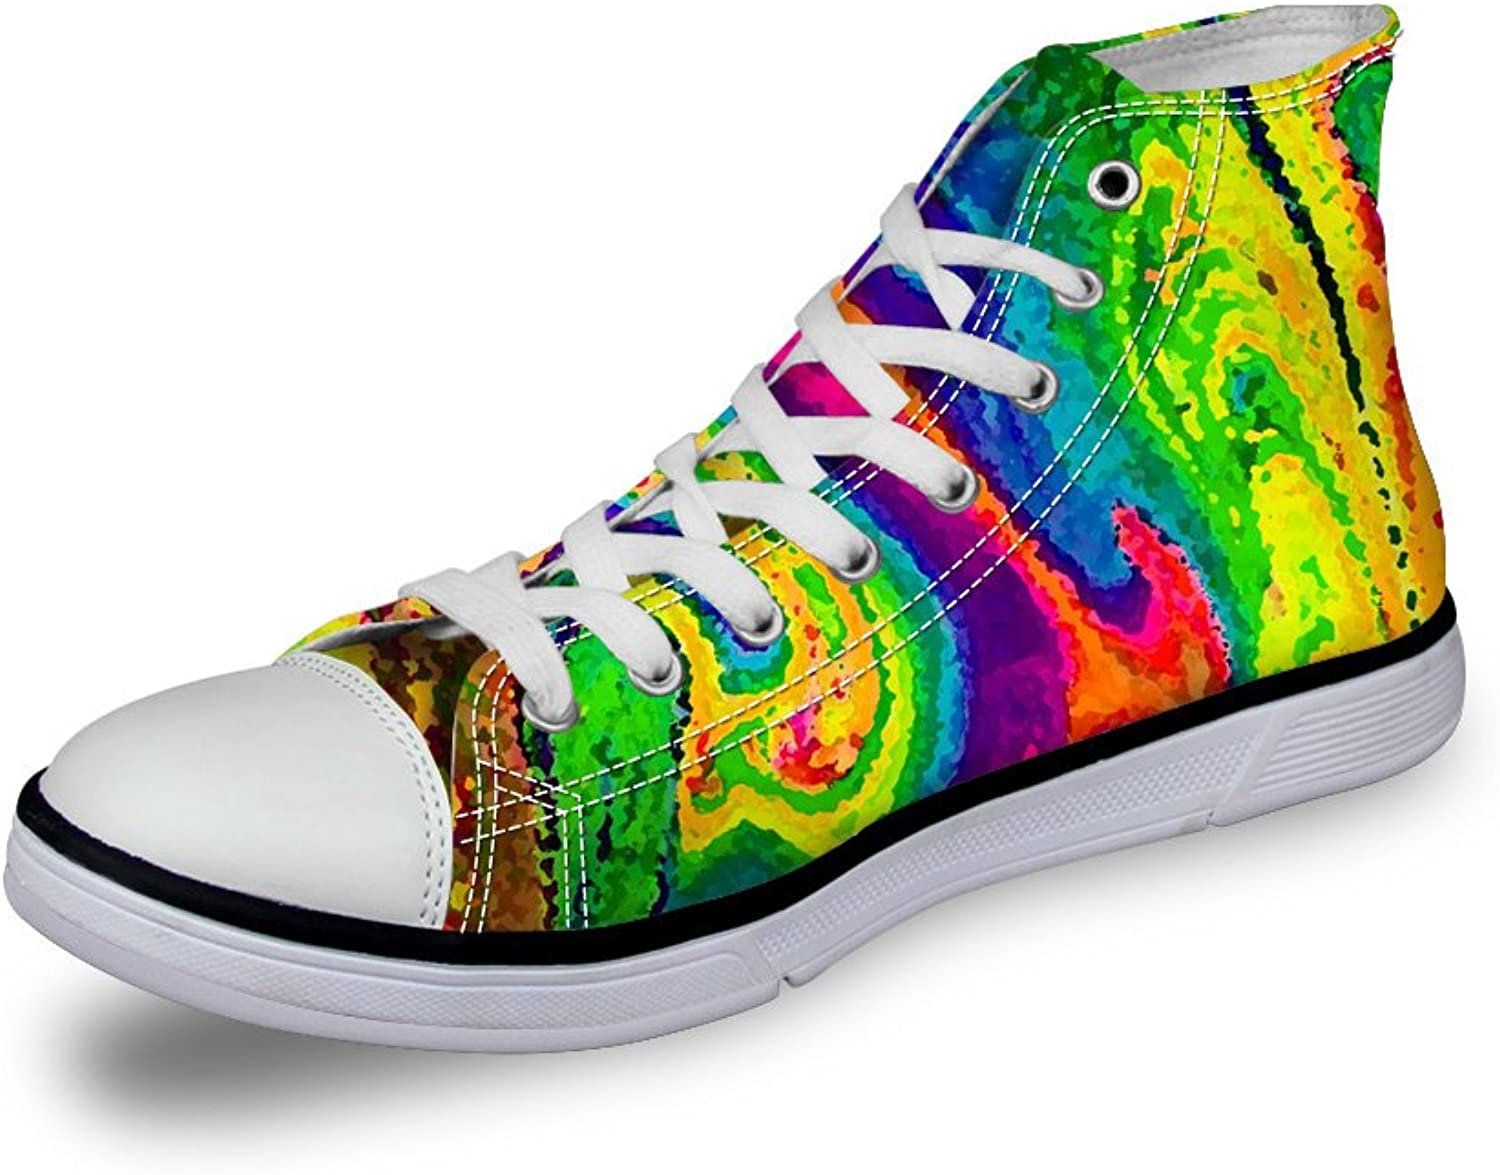 Mumeson colorful Women's Fashion High Top Canvas shoes Trainers Walking Sneakers US 5-11